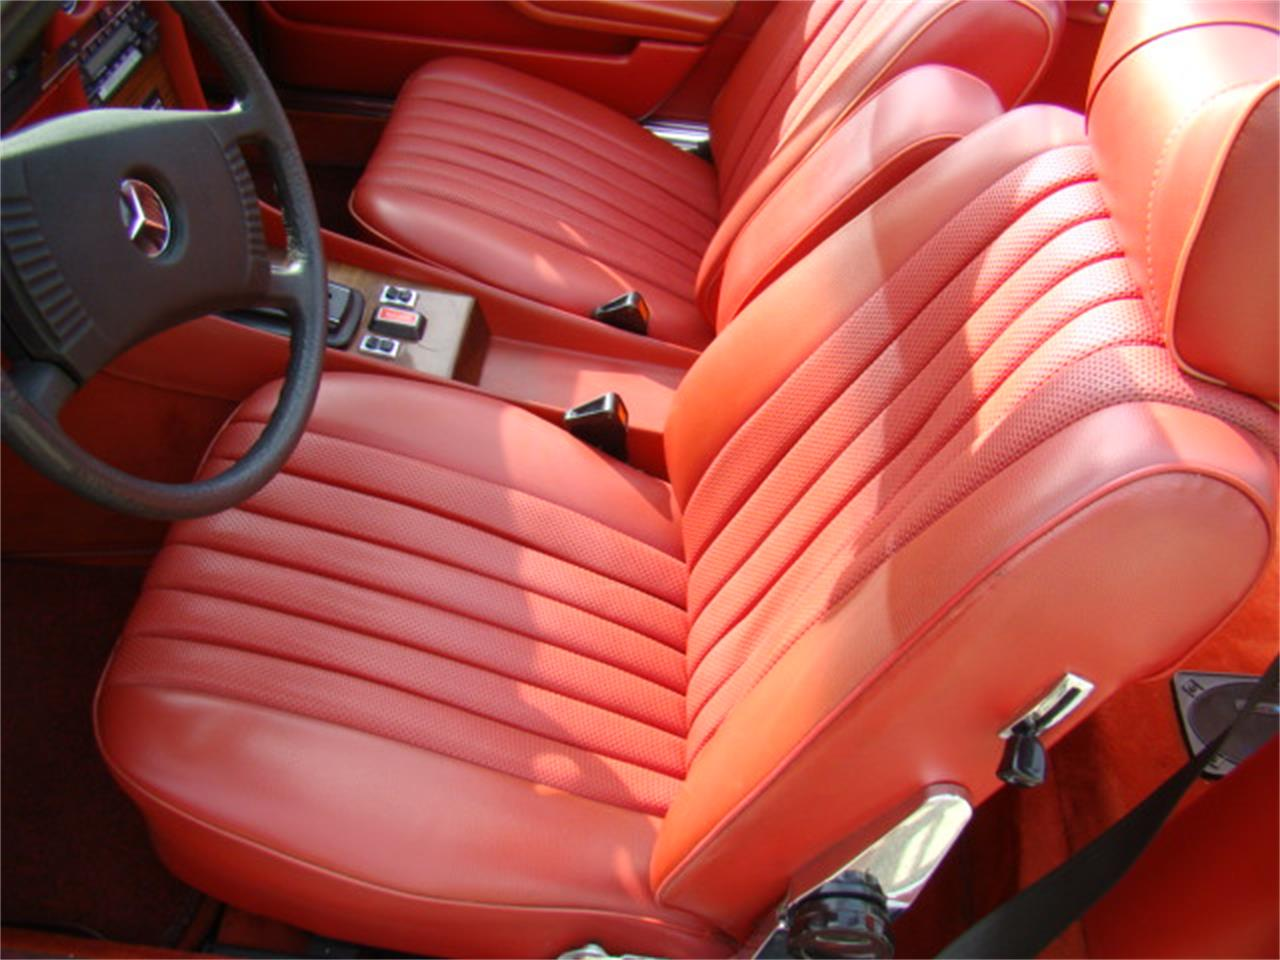 Large Picture of '78 Mercedes-Benz 450SL located in Illinois Offered by a Private Seller - F3LR